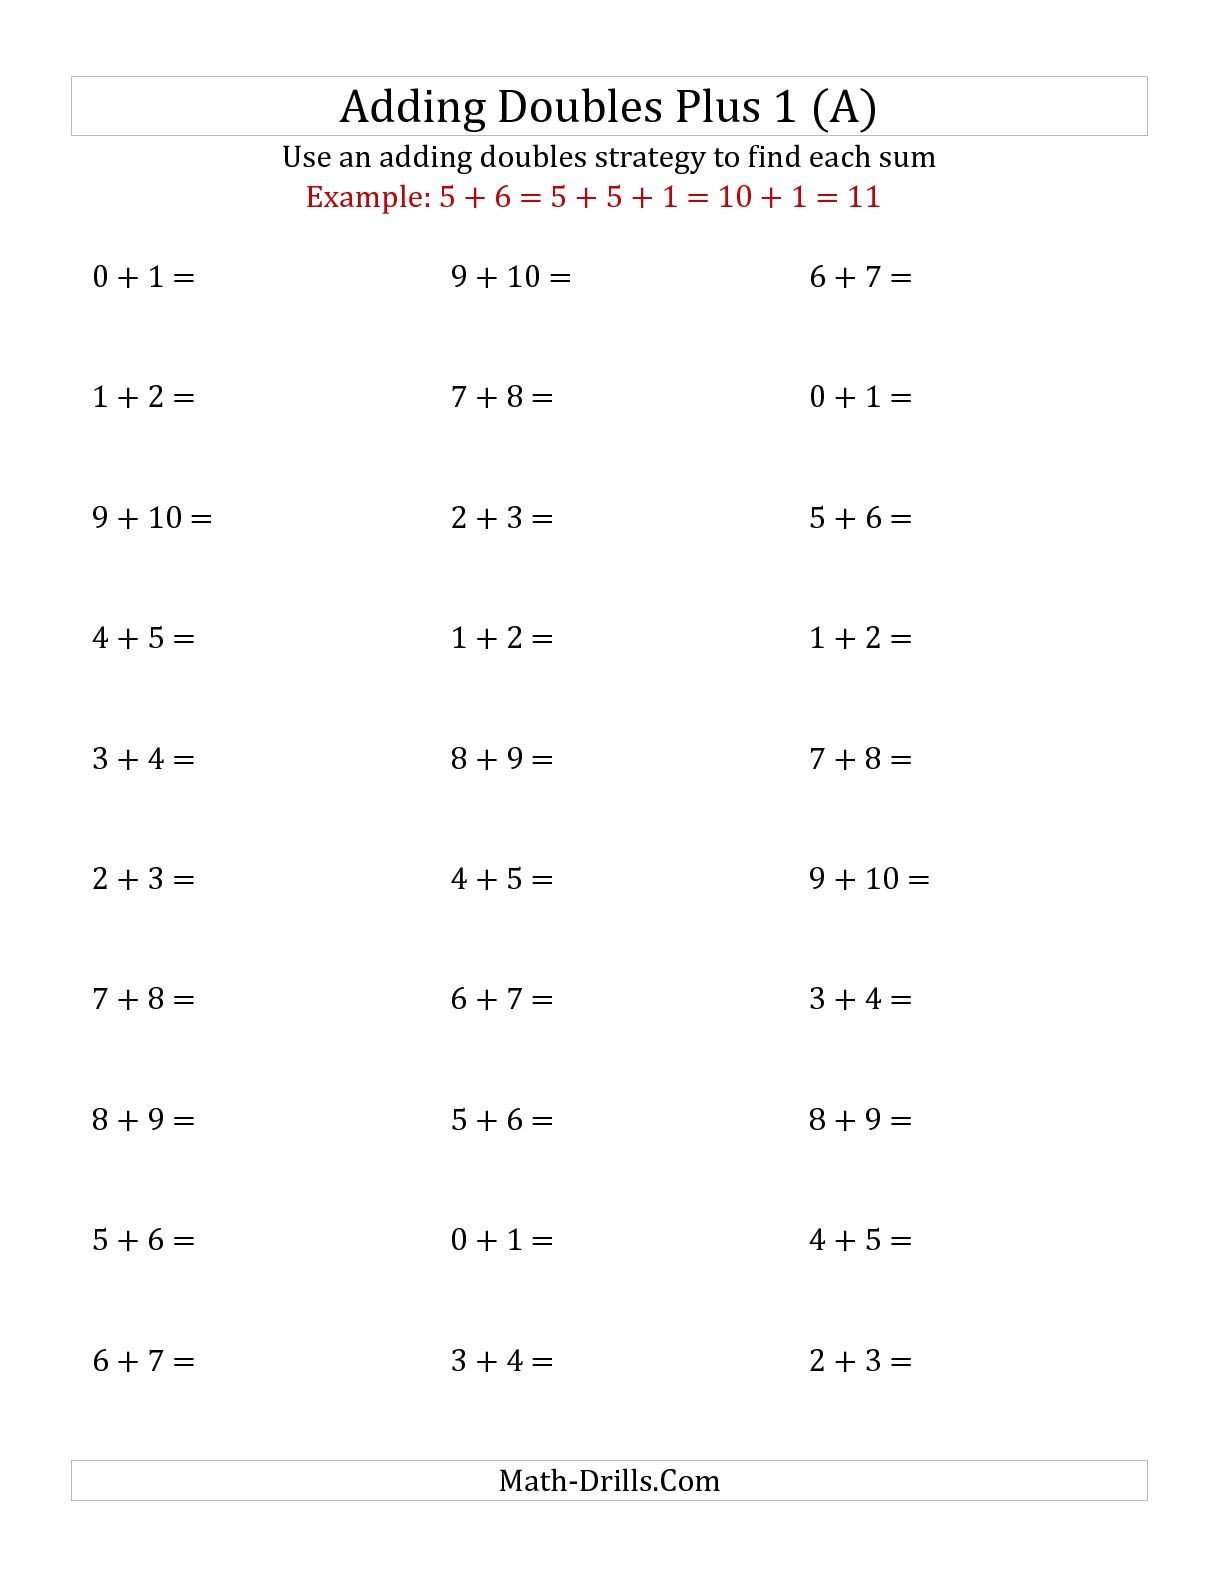 Doubles and Near Doubles Worksheets the Adding Doubles Plus 1 Small Numbers A Math Worksheet